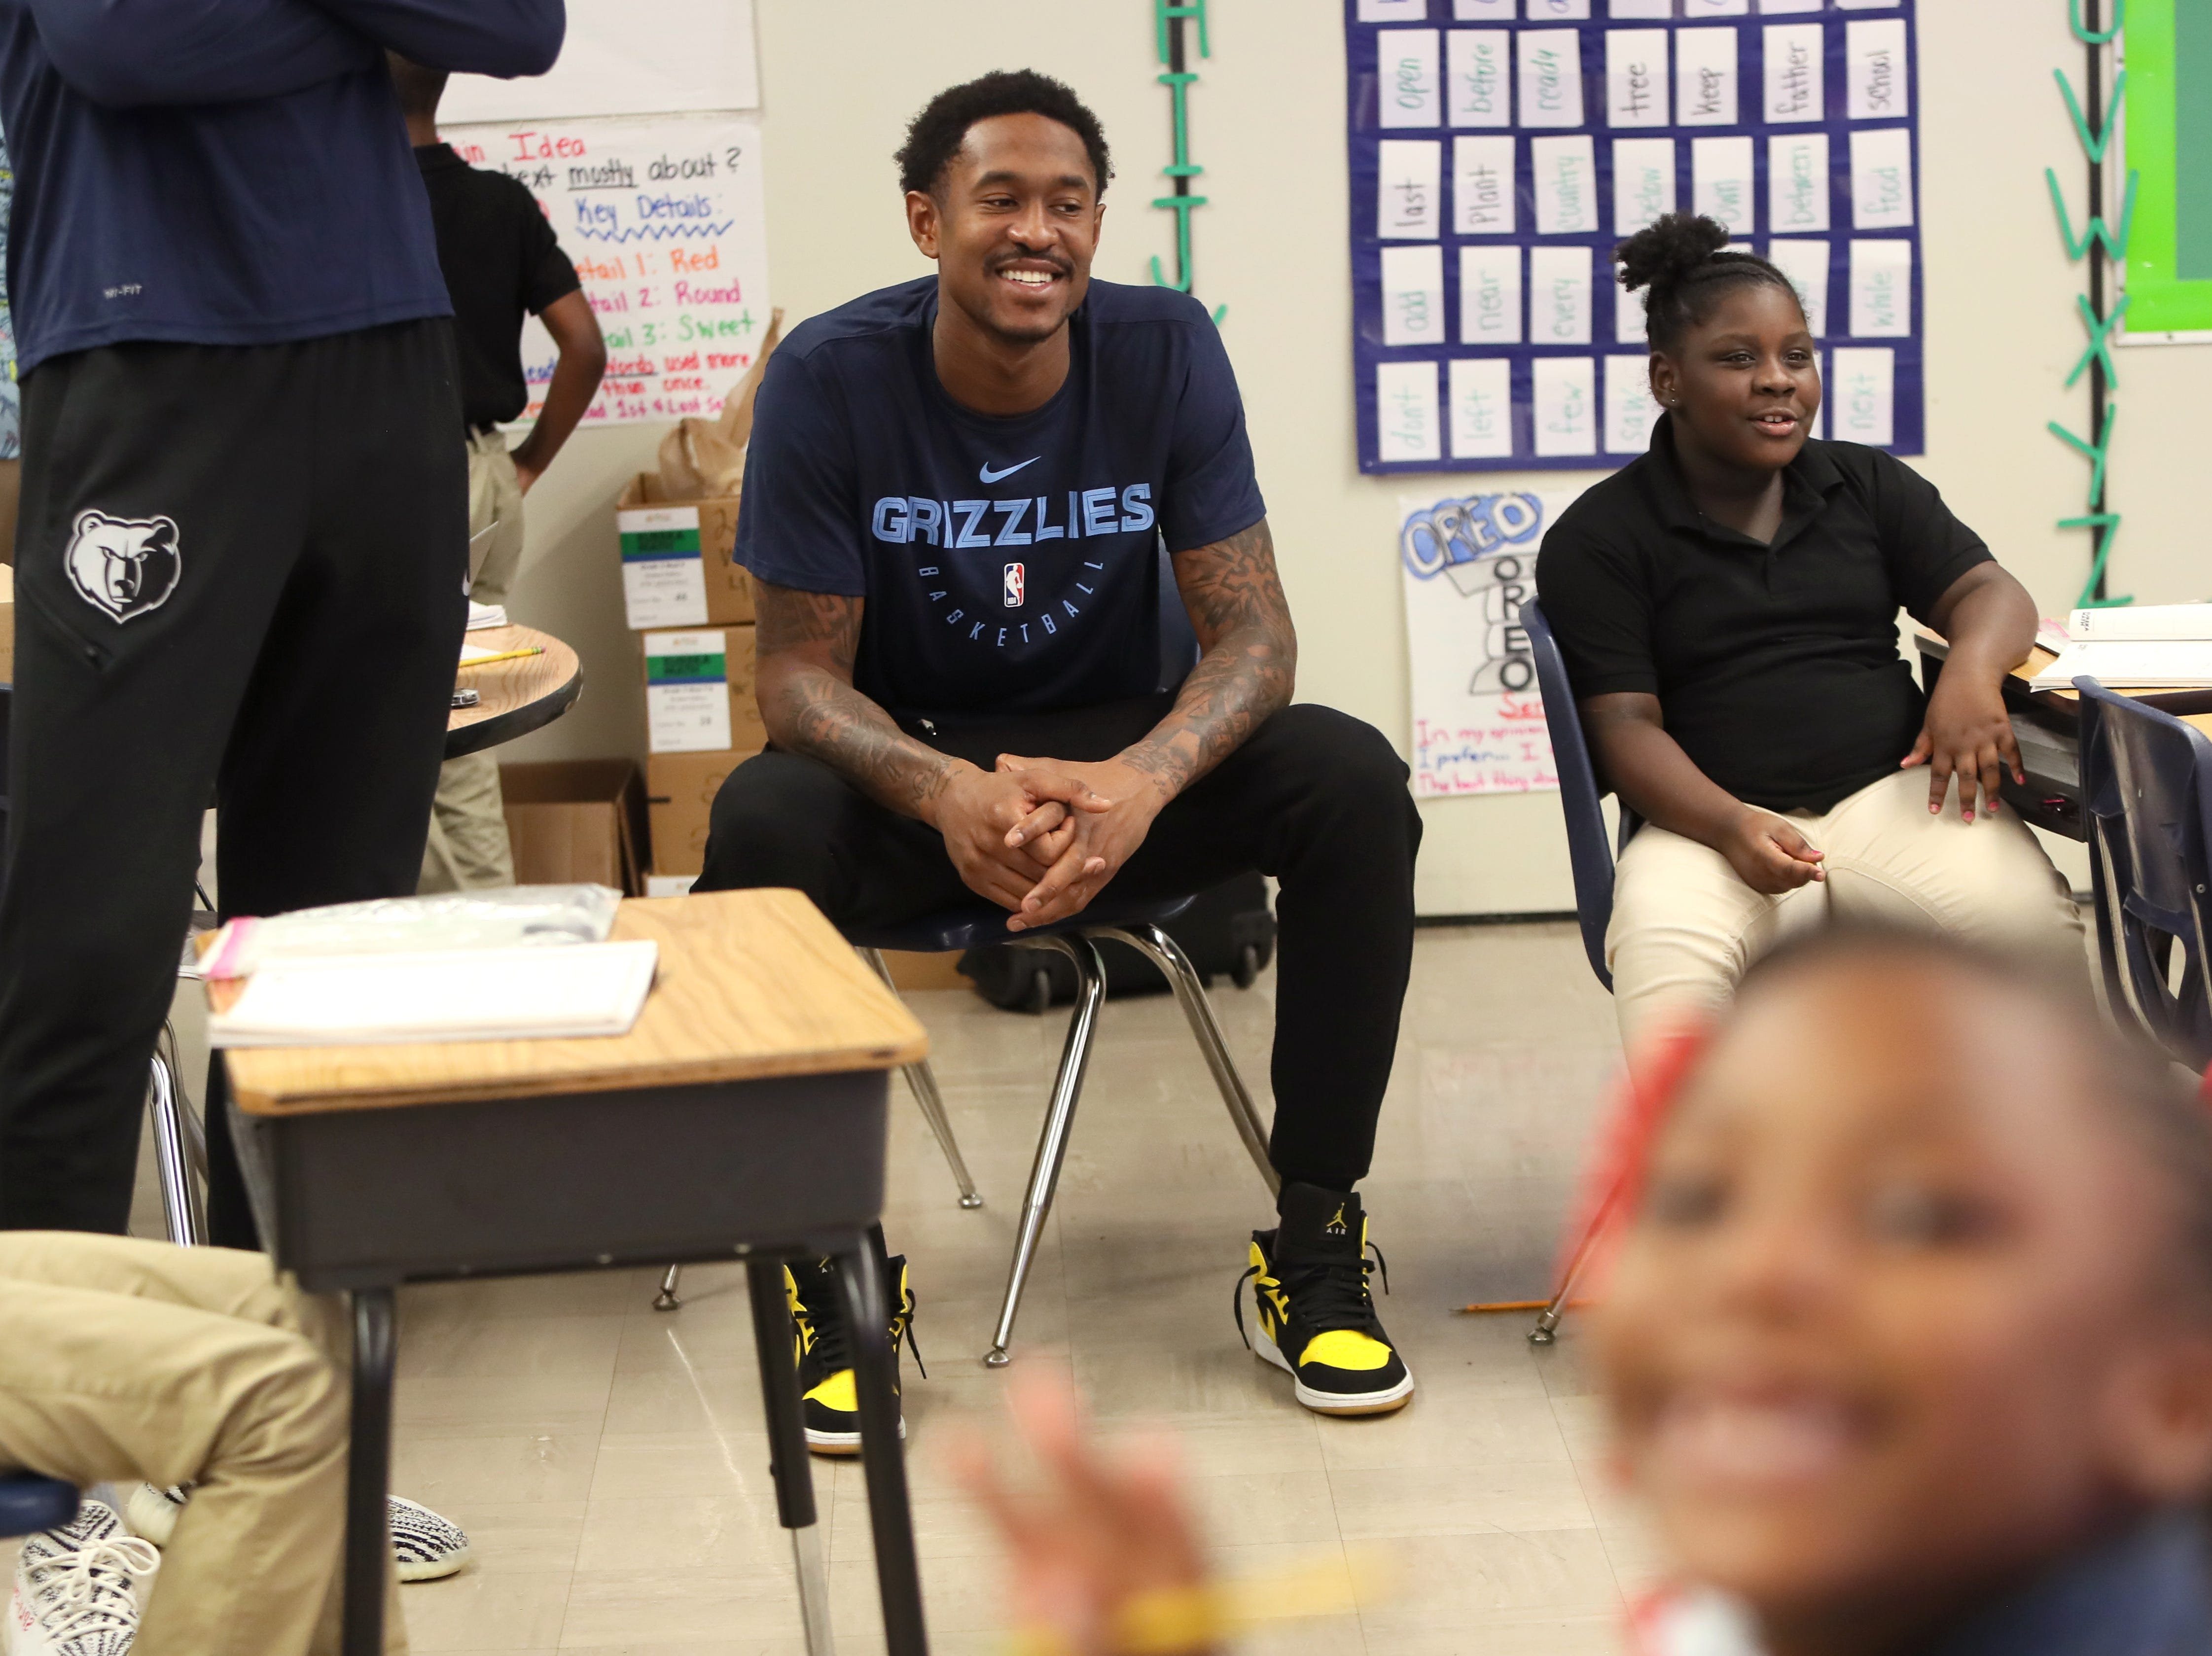 Memphis Grizzlies' MarShon Brooks surprises a classroom as his team, FedEx and Operation Warm surprise children with new coats at Hawkins Mill Elementary School on Thursday, Nov. 8, 2018.